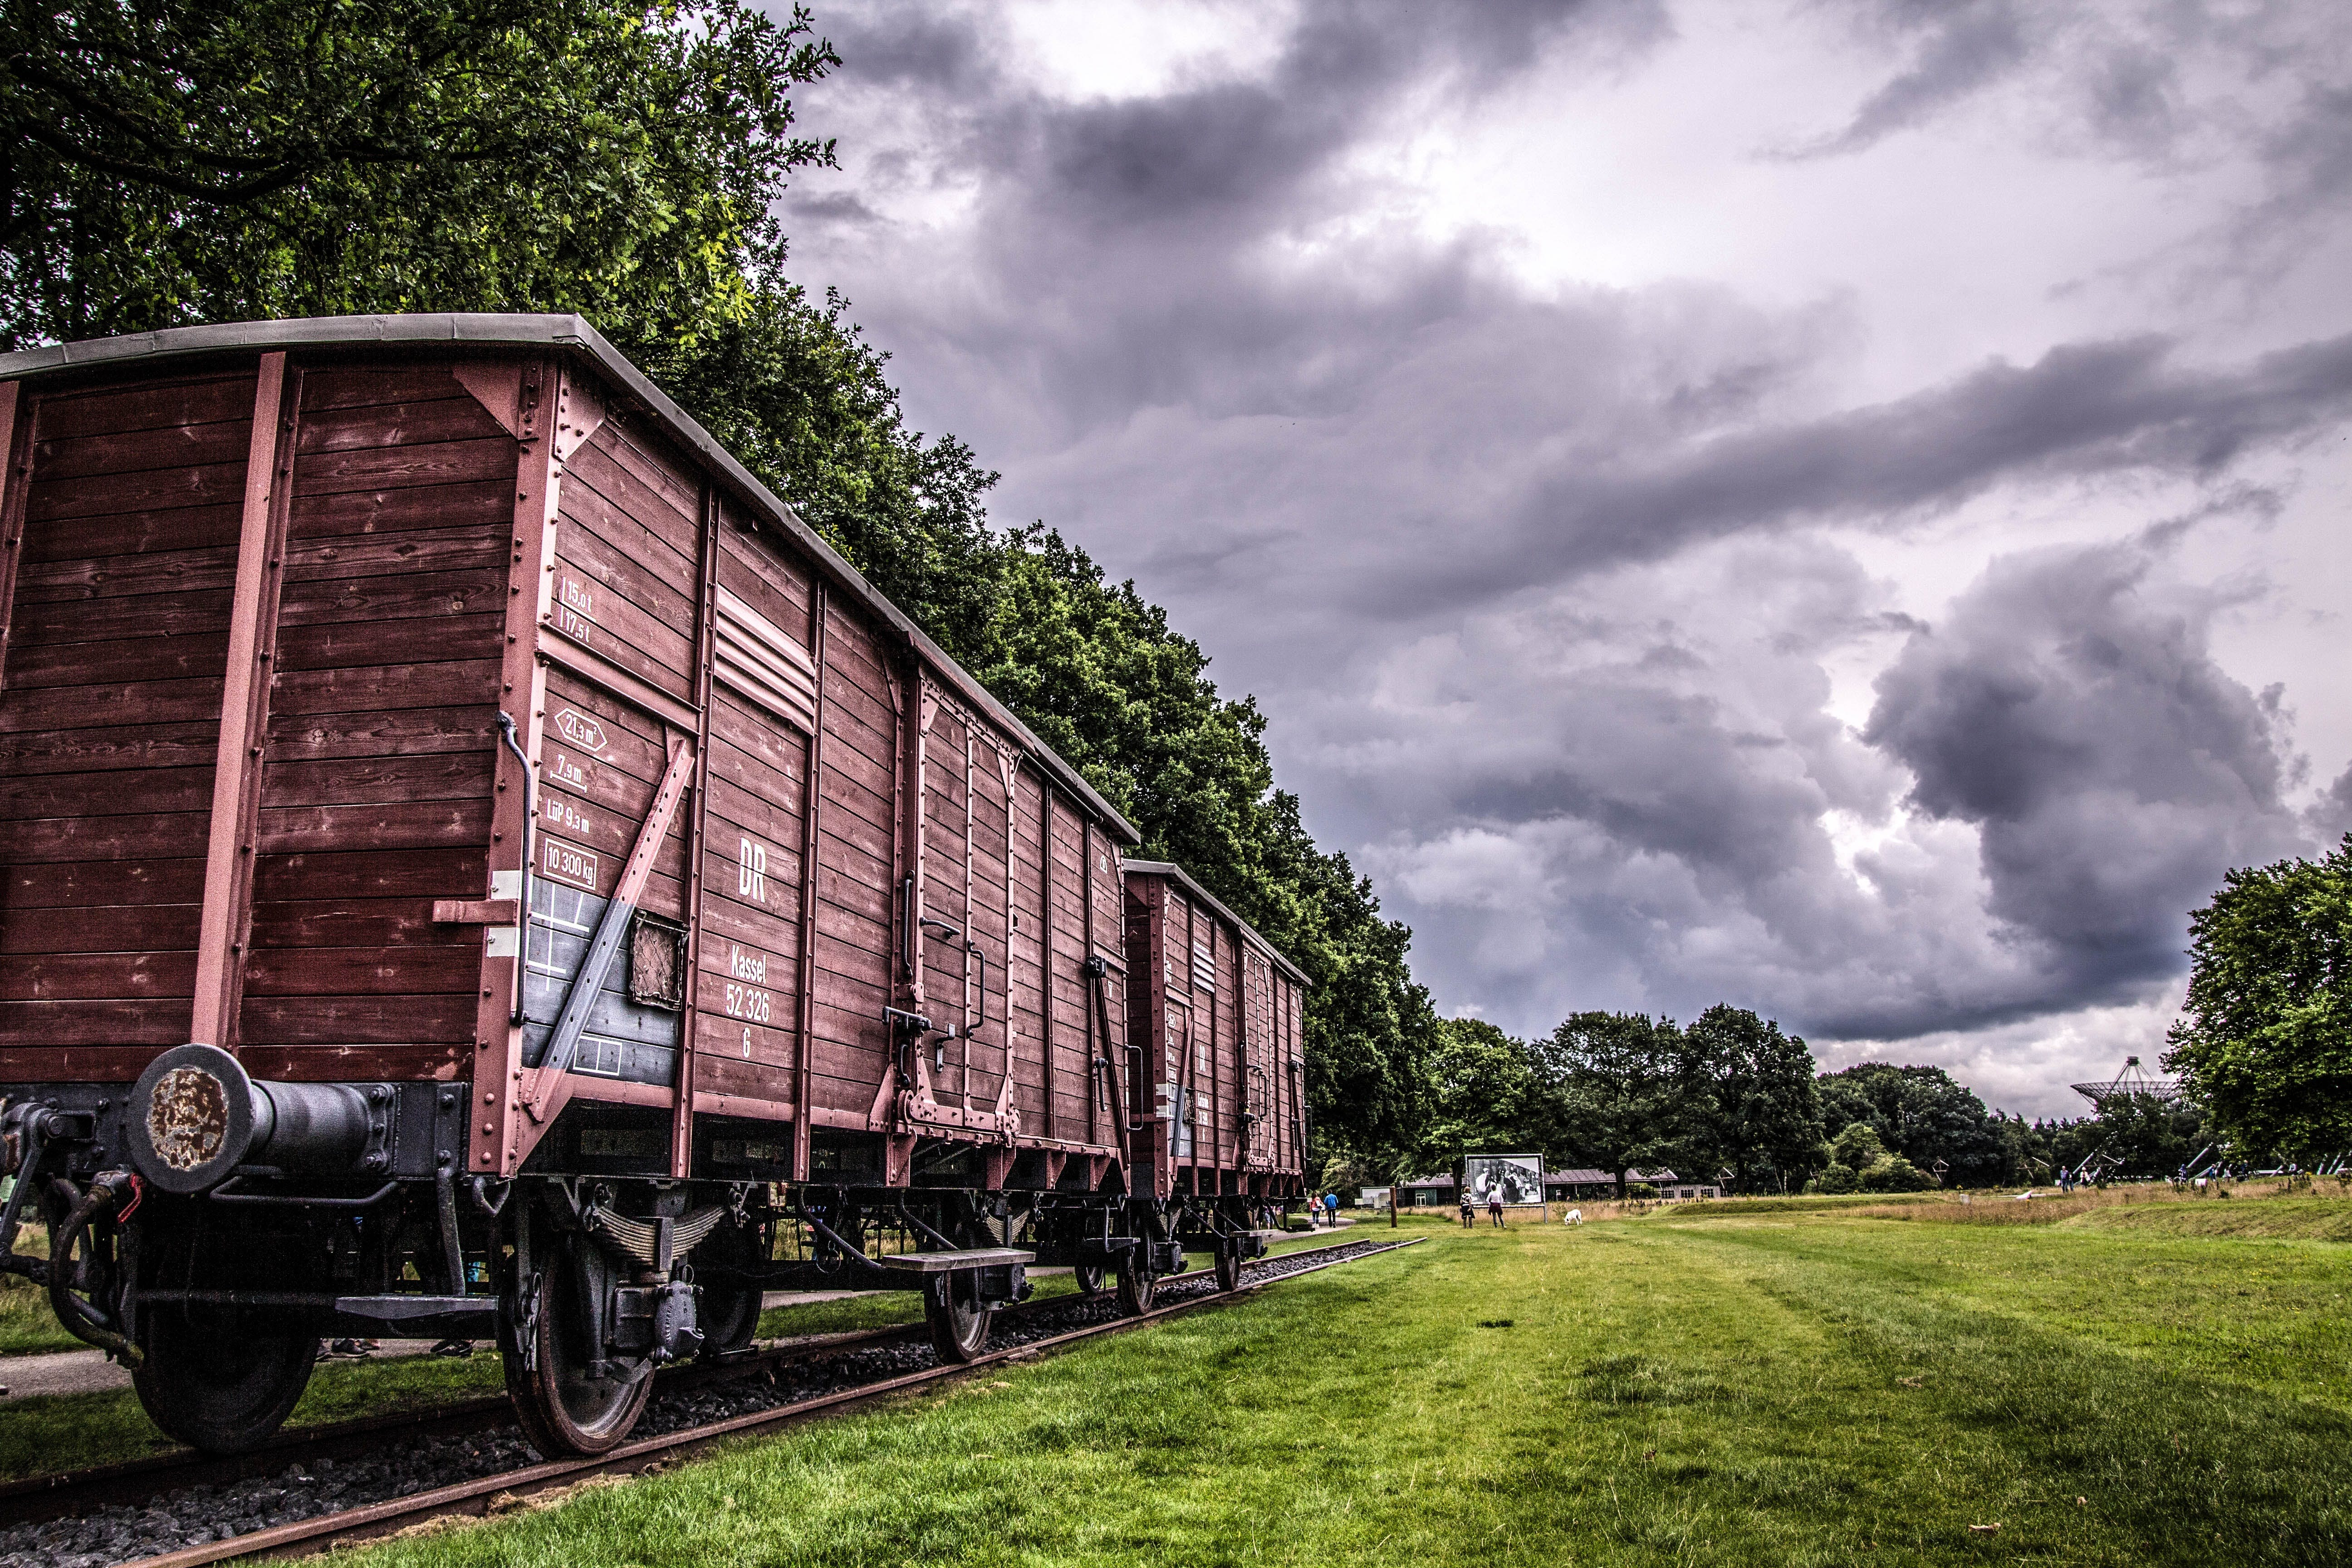 Two Train Cars on Track Under Cloudy Sky